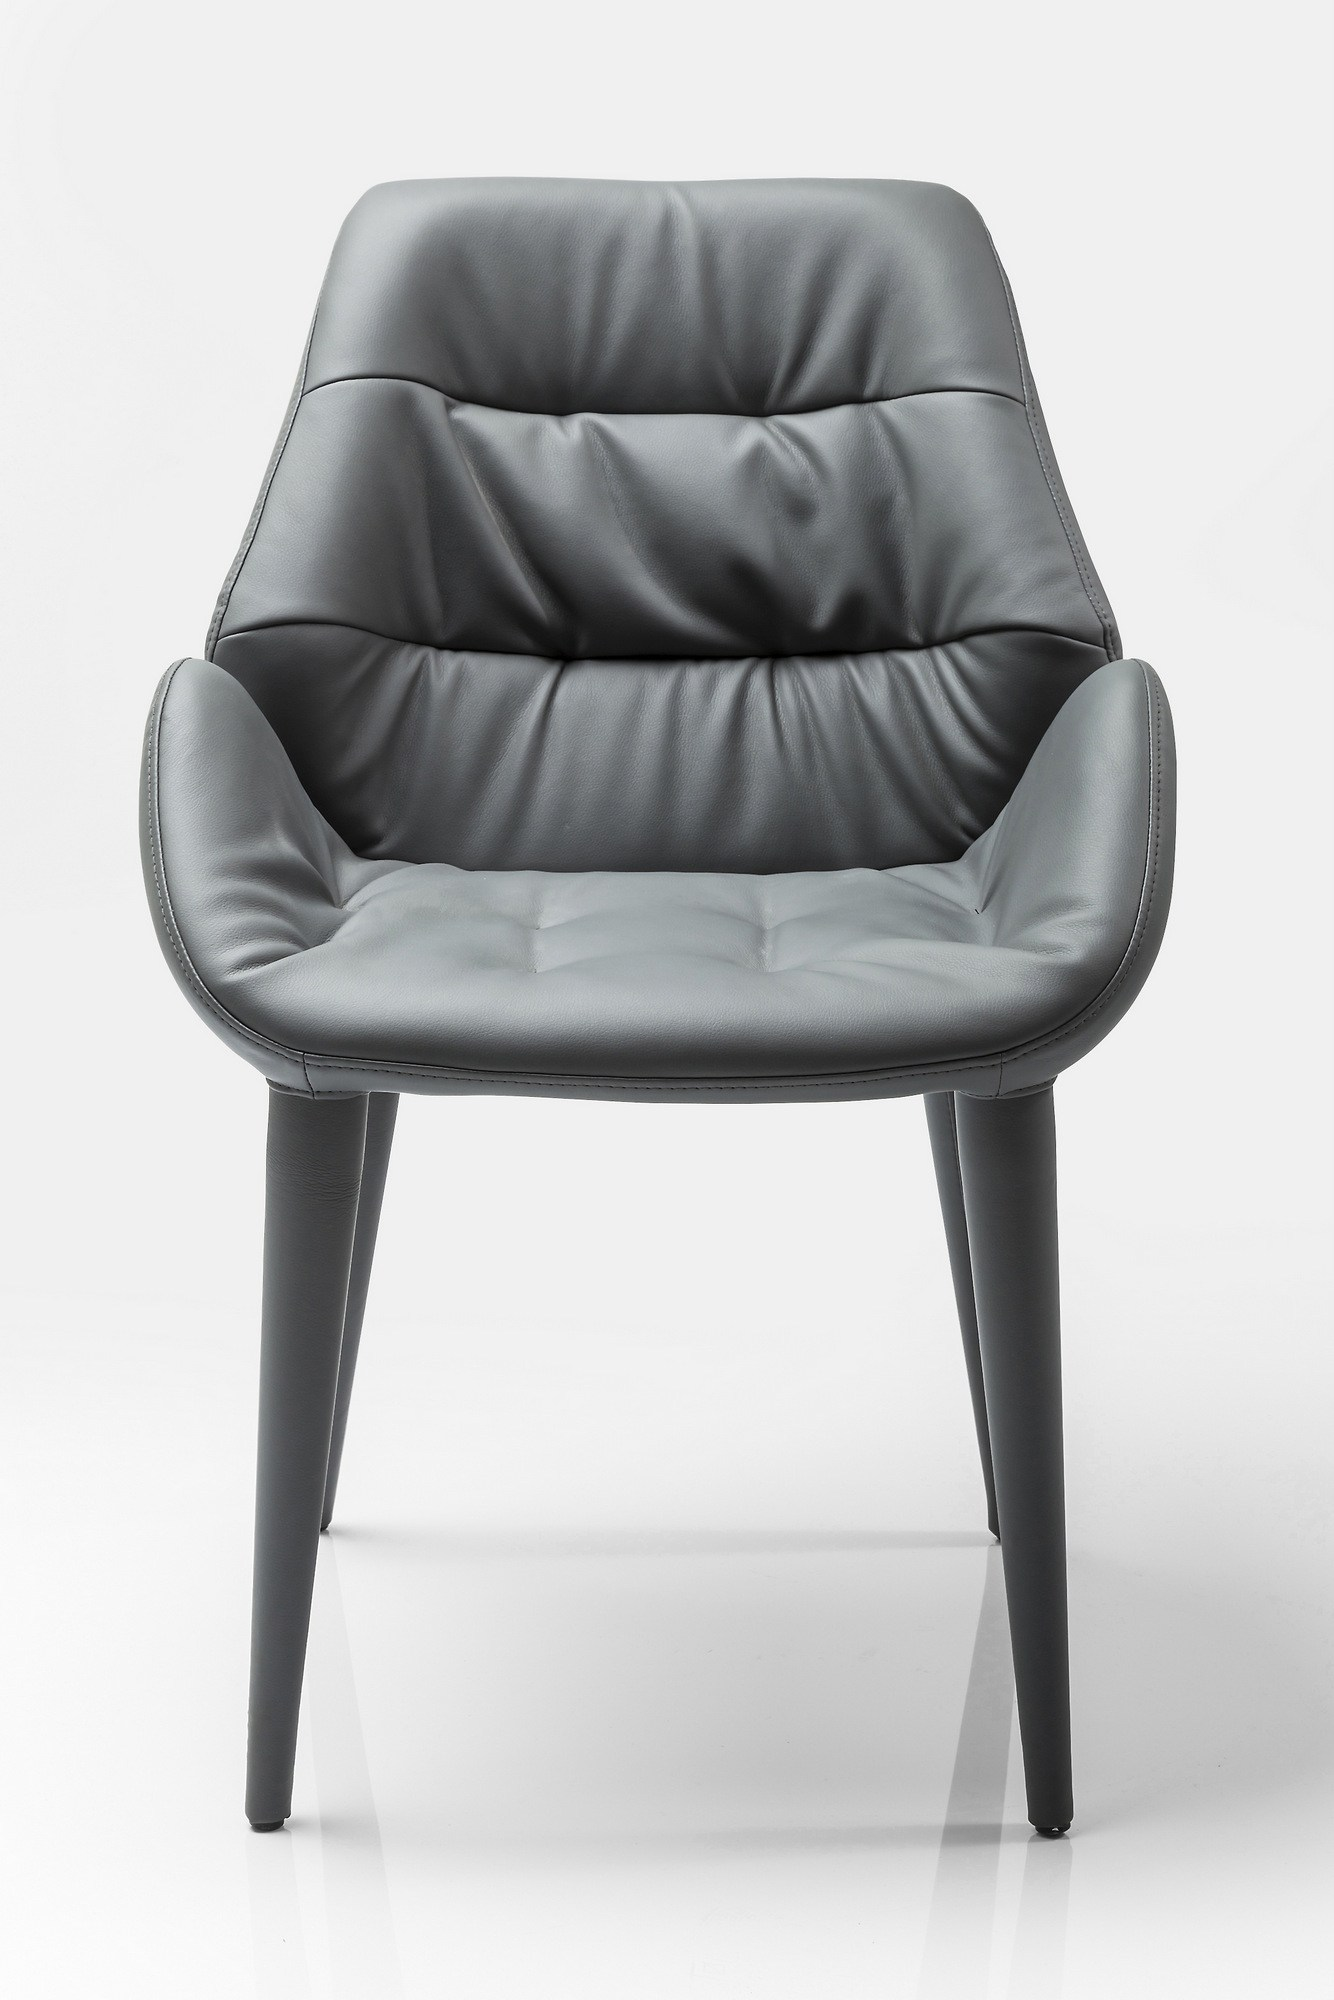 Sedia imbottita chair armrest jumper by kare design for Sedia kare design